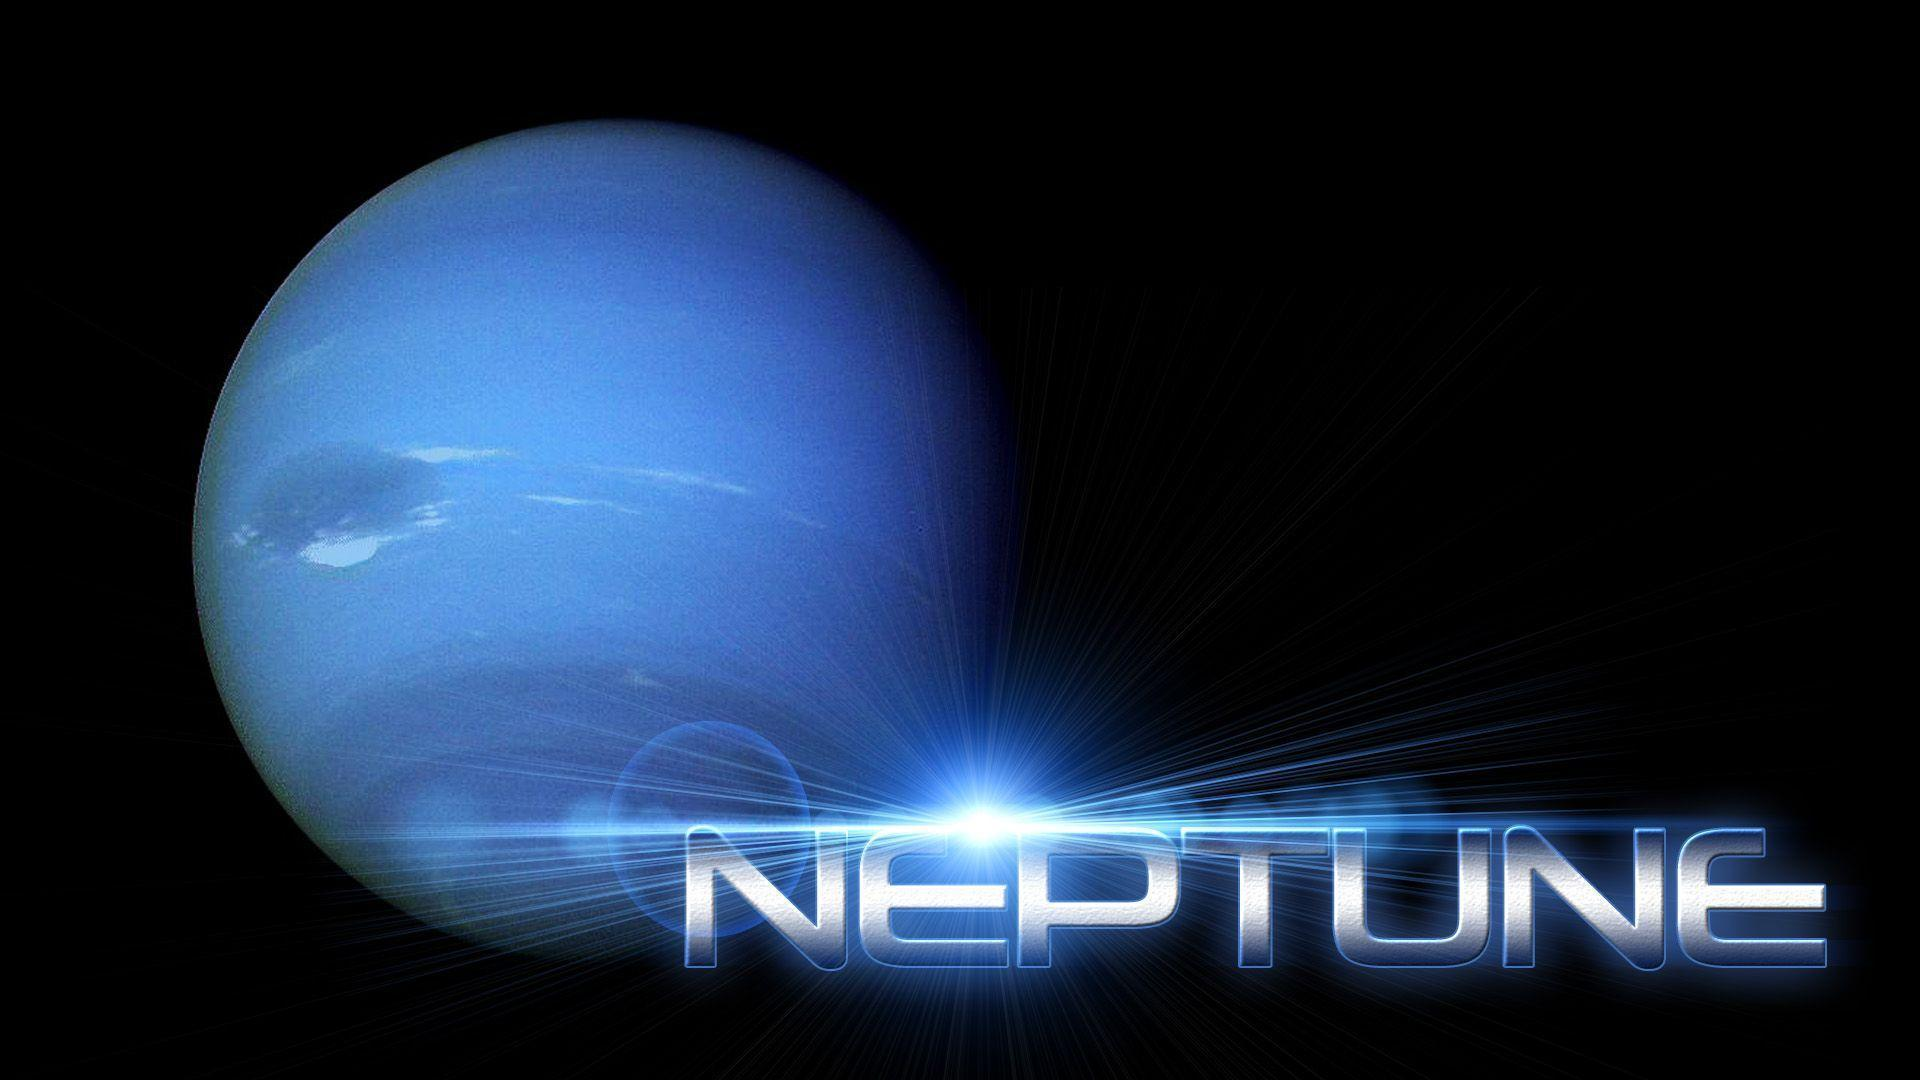 44 Widescreen HD Wallpapers of Neptune for Windows and Mac Systems